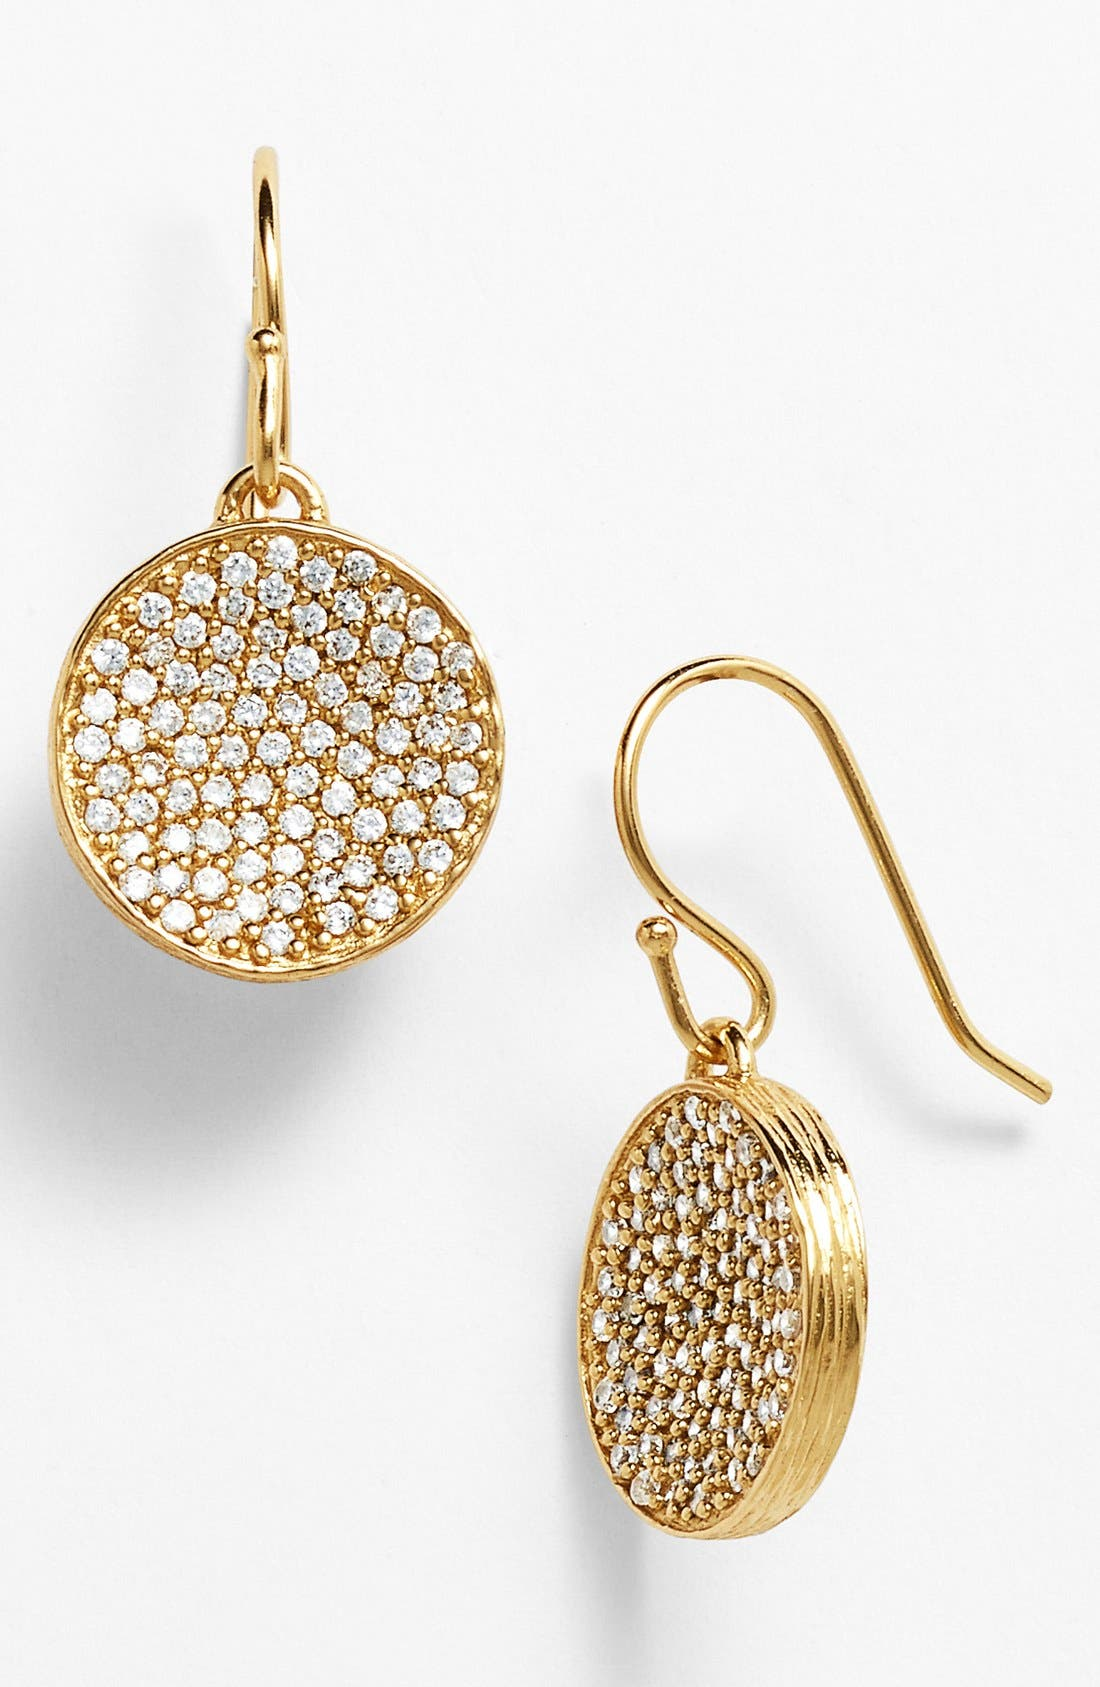 Alternate Image 1 Selected - Melinda Maria 'Kalena' Pod Drop Earrings (Nordstrom Exclusive)